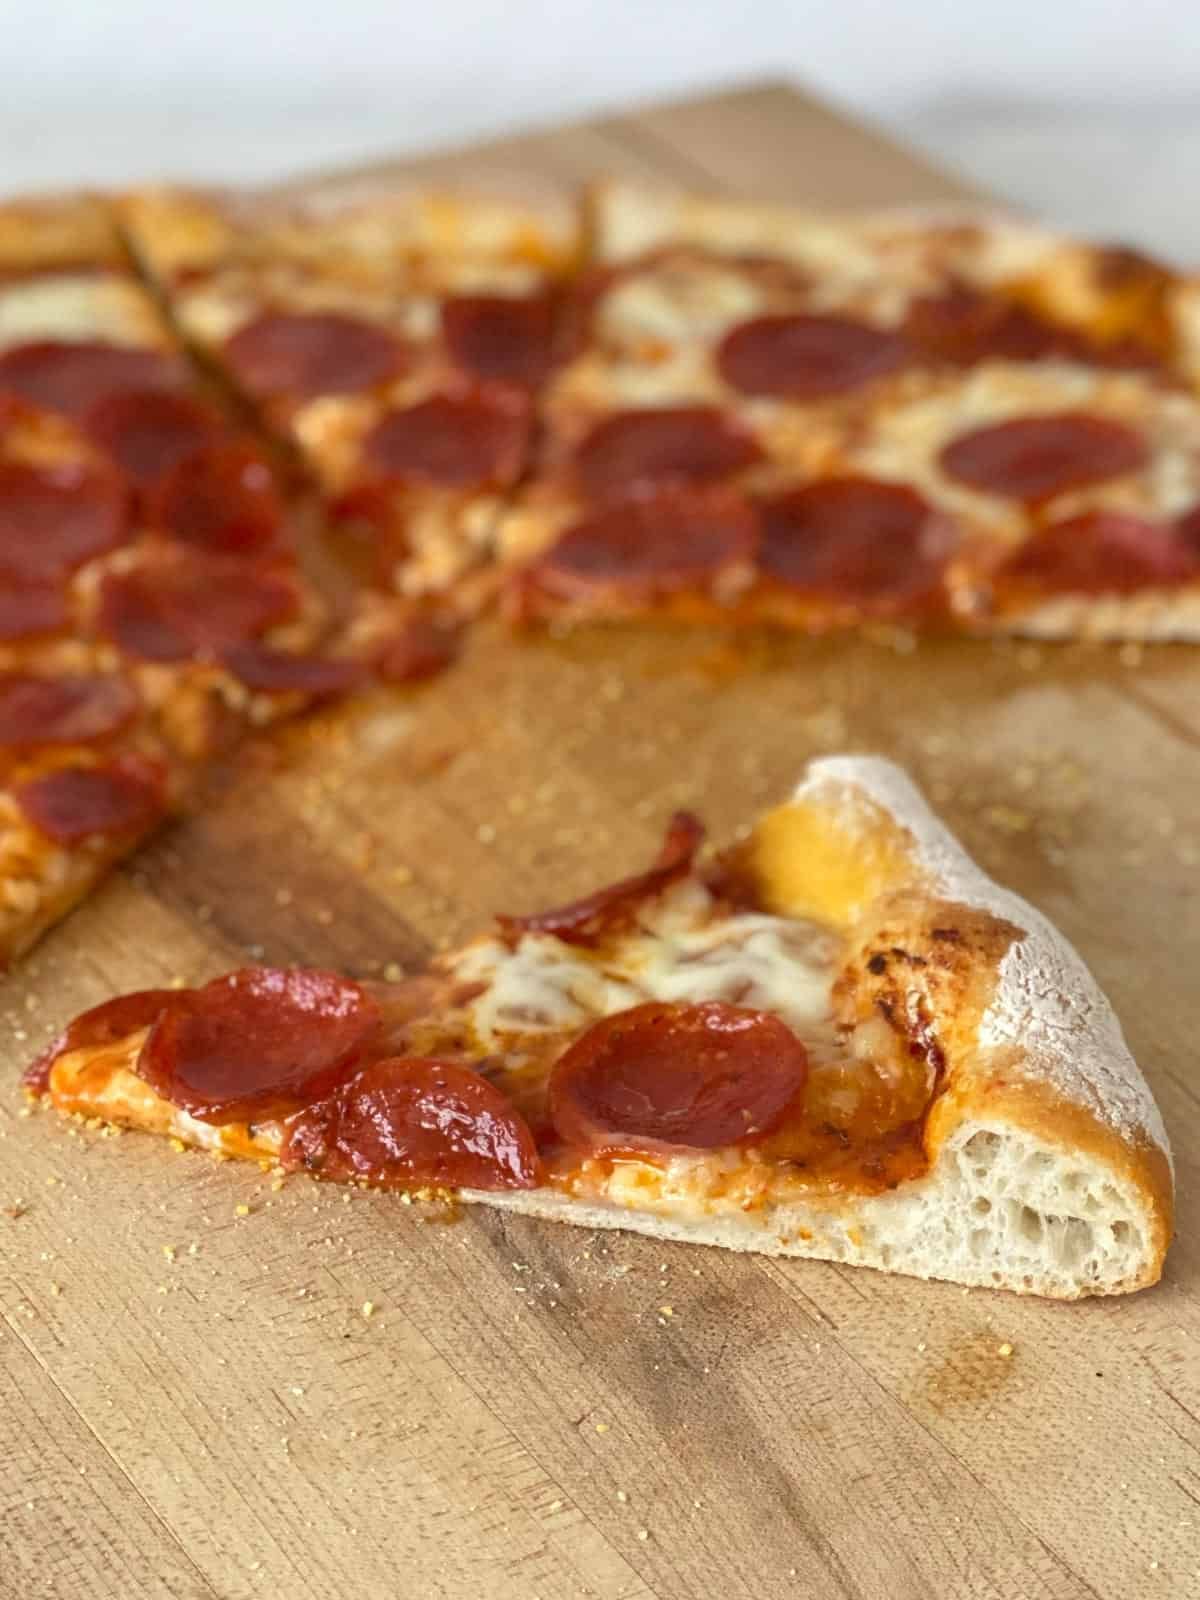 New york style pizza with pepperoni and cheese, sliced